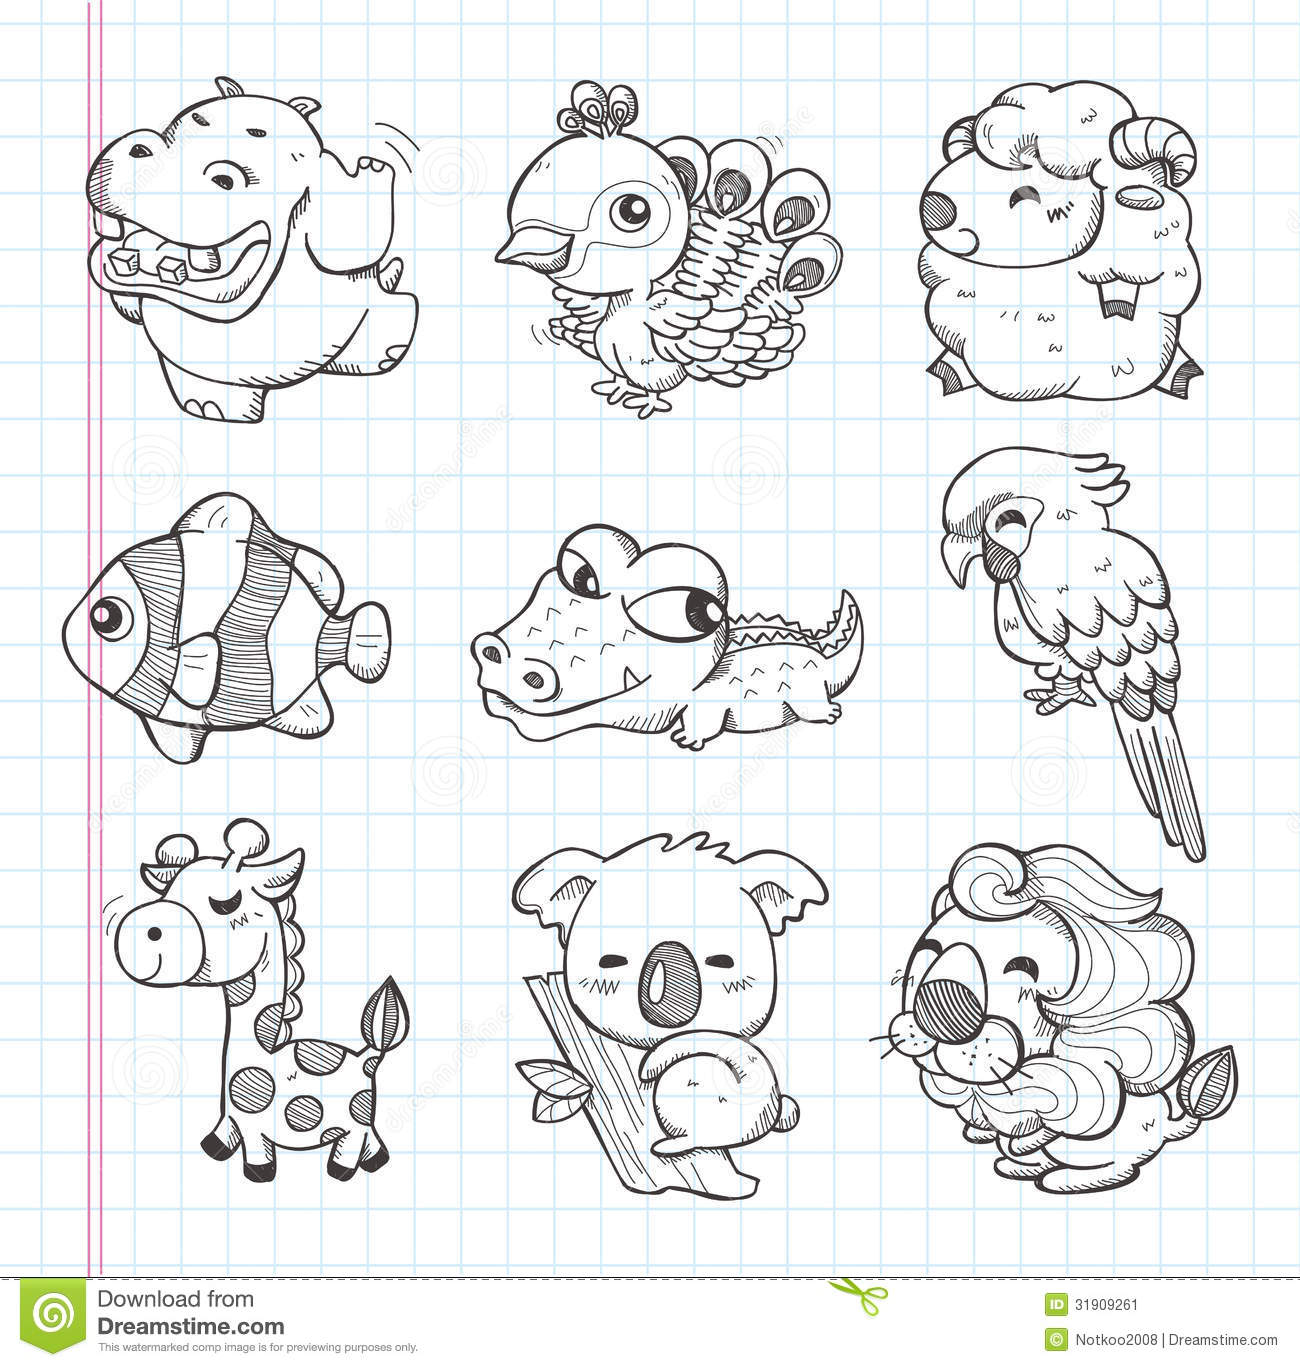 Stock Image Set Doodle Animal Icons Cartoon Vector Illustration Image31909261 on Simple House Plans